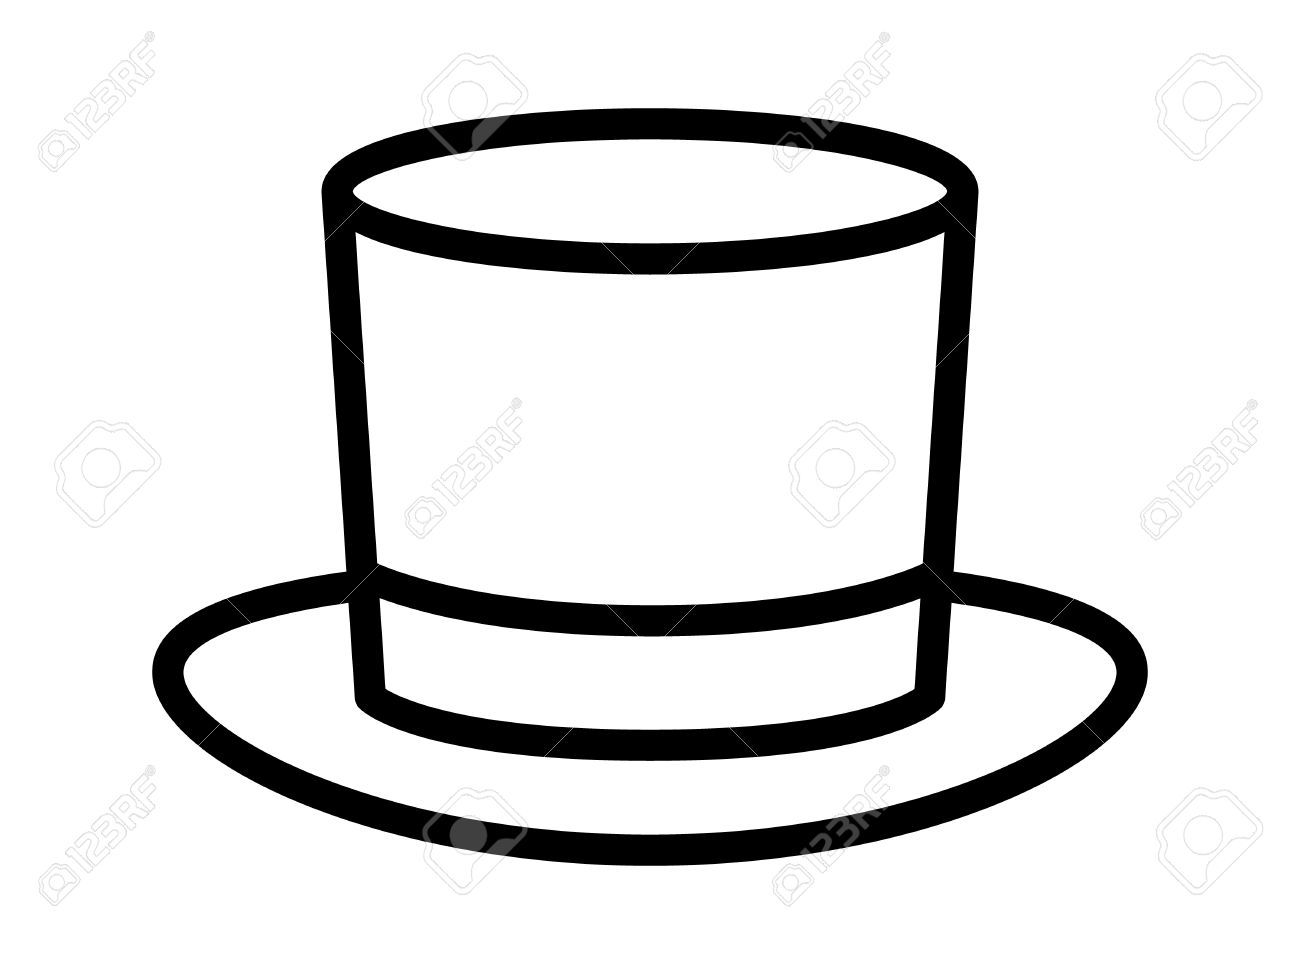 c345de44f3e613 Magic top hat or high hat line art icon for apps and websites Stock Vector -